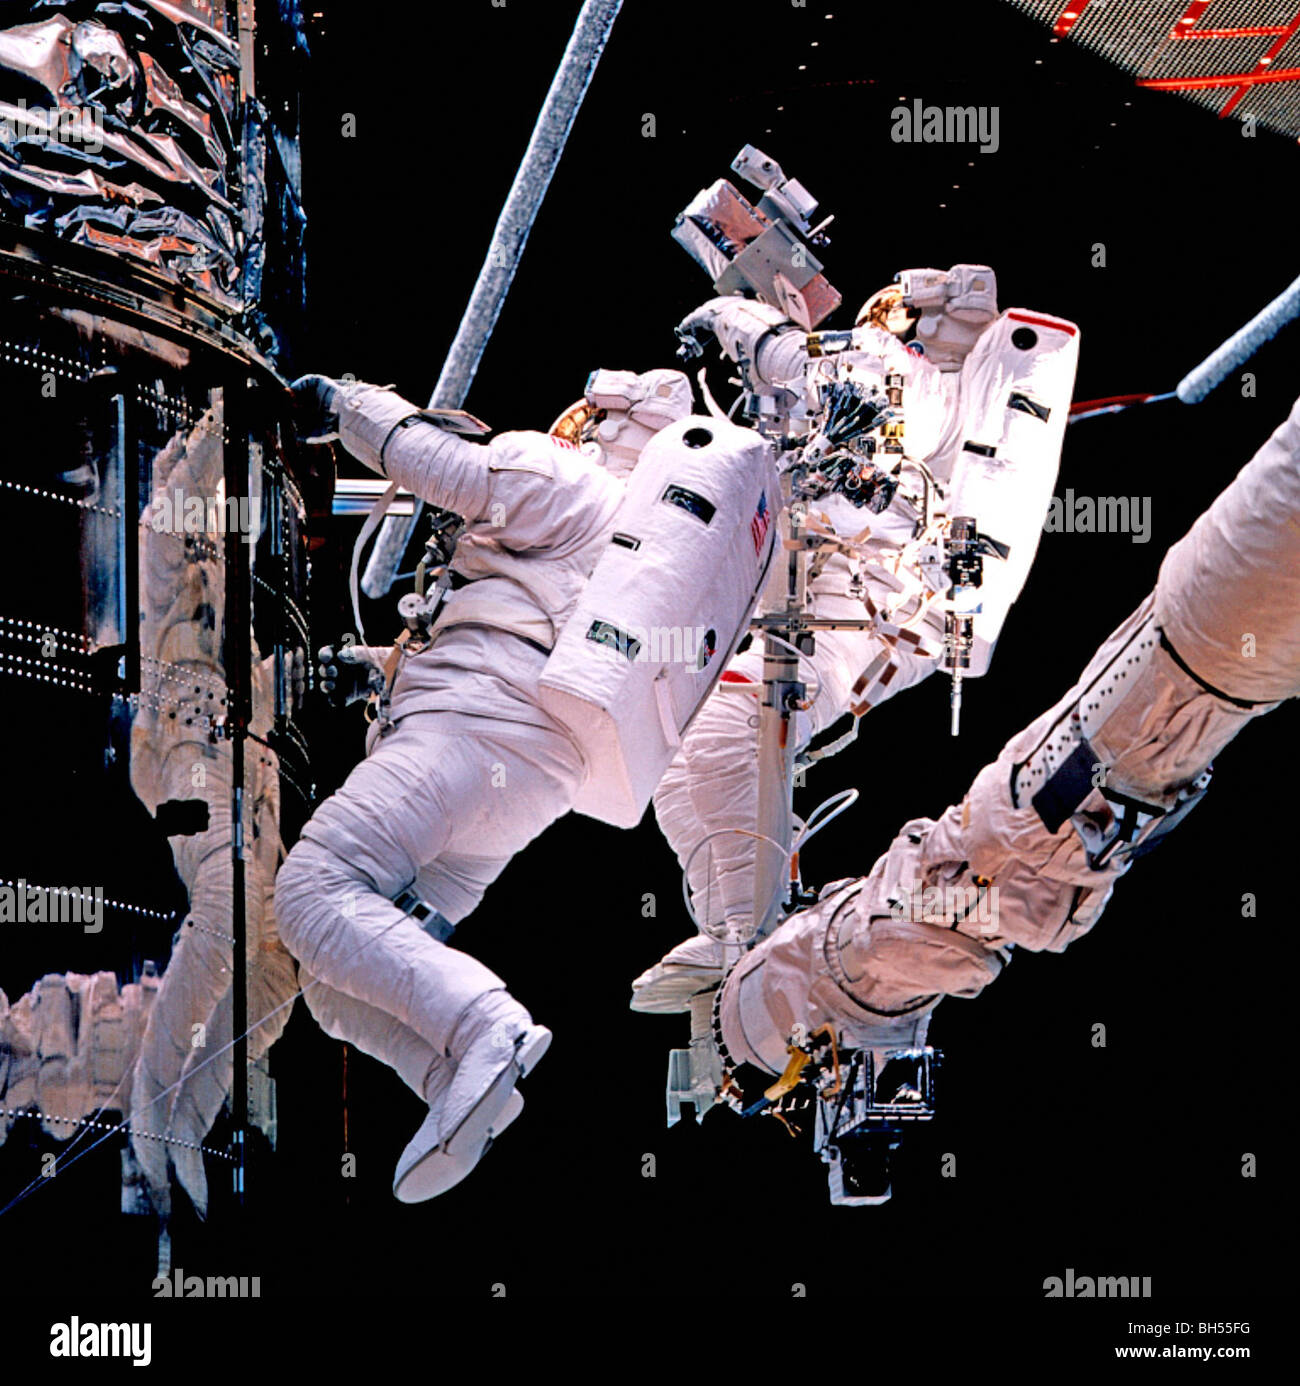 astronaut working in space - photo #9